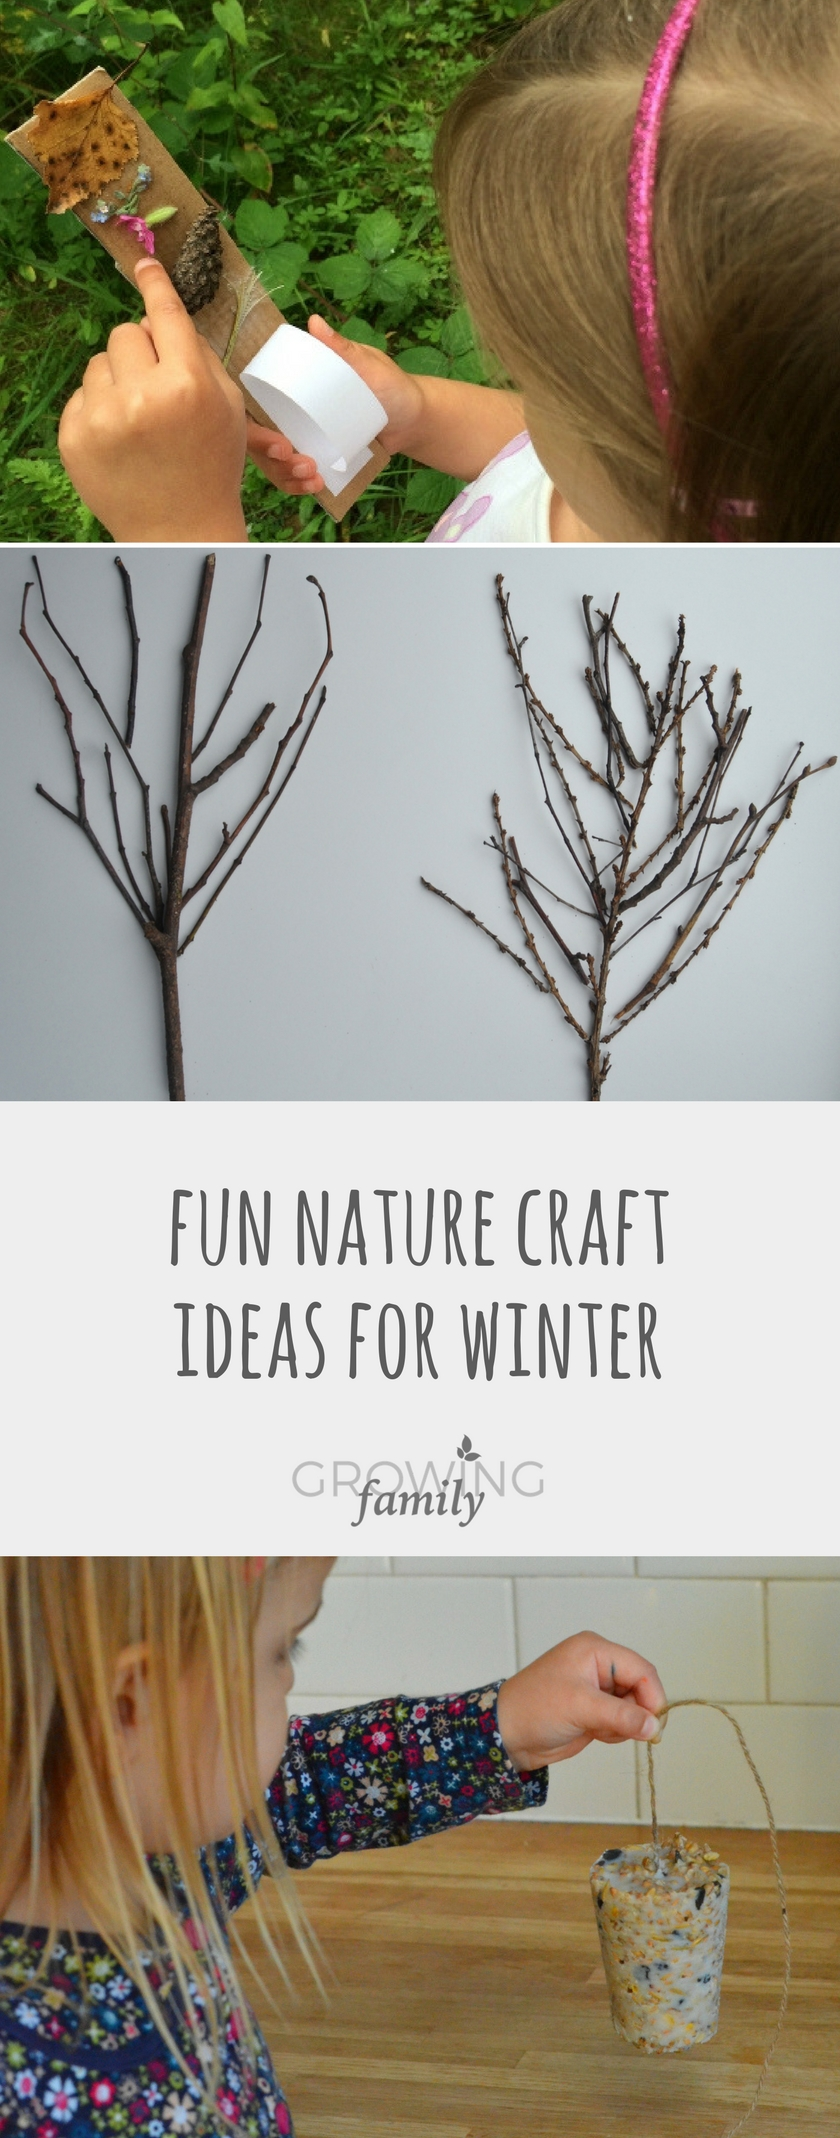 Fun Winter Nature Crafts For Children Growing Family